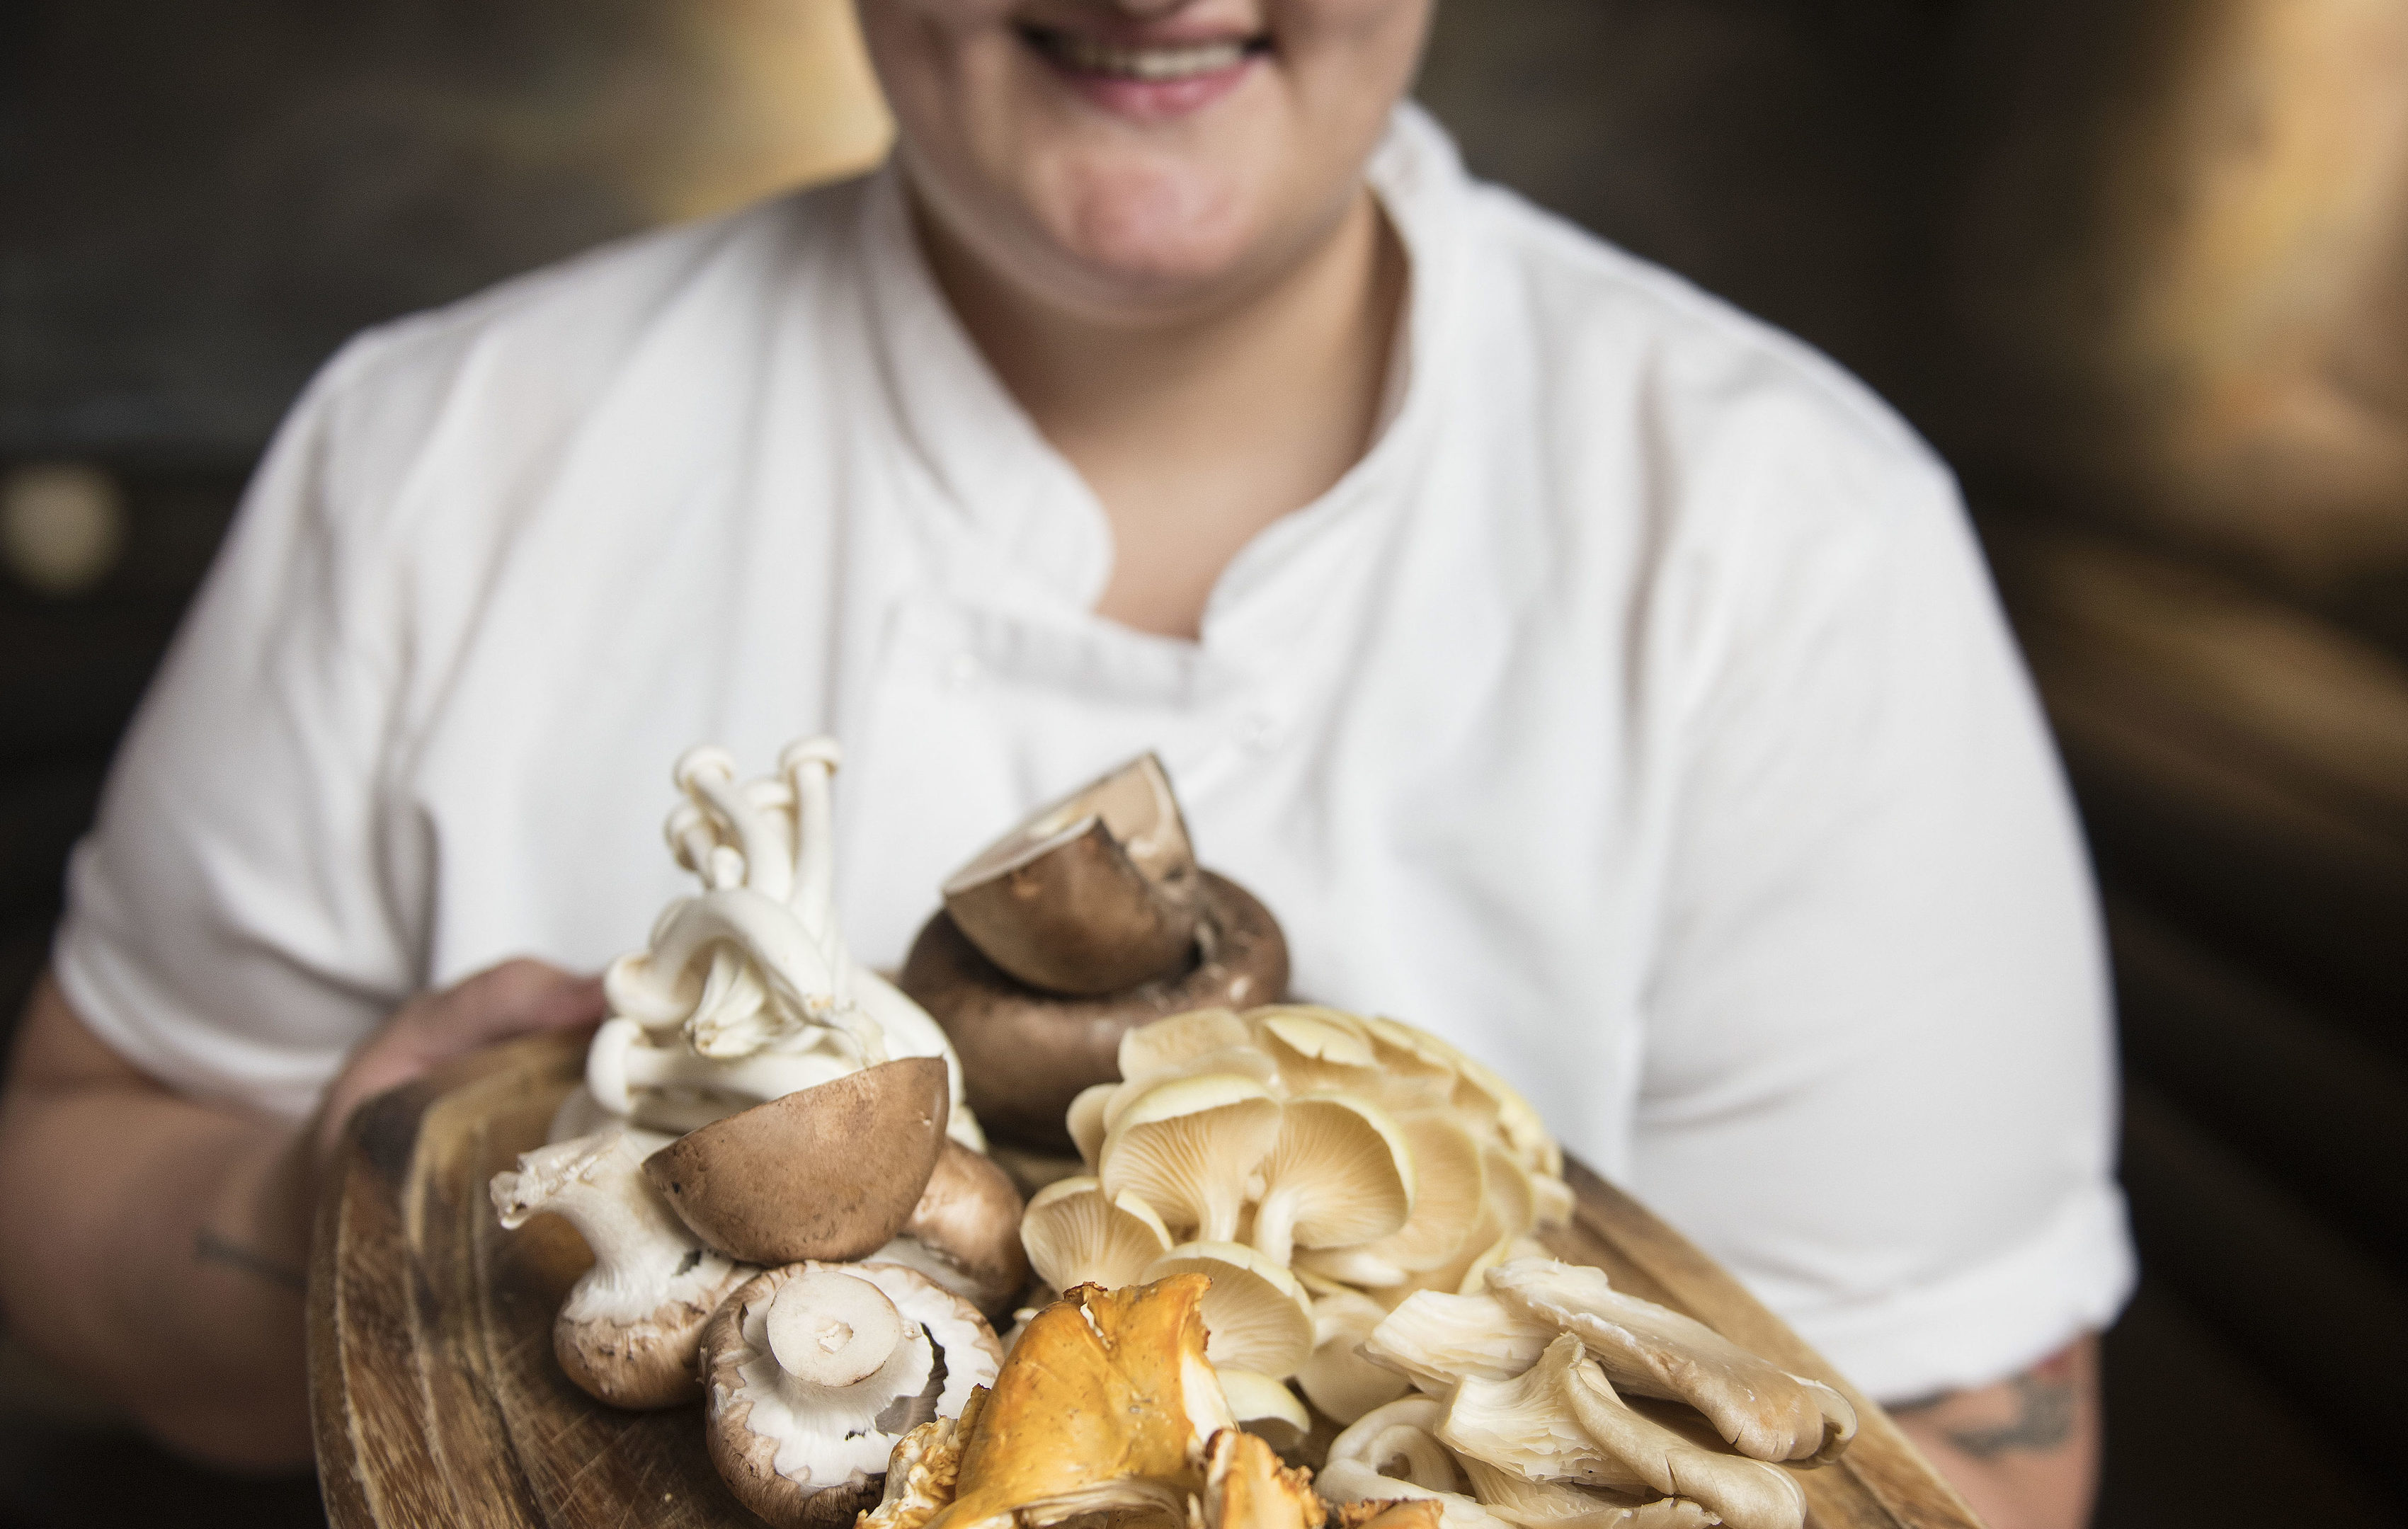 Mushrooms with head chef Yvonne Noon from Sisters restaurant in Glasgow (Wattie Cheung)